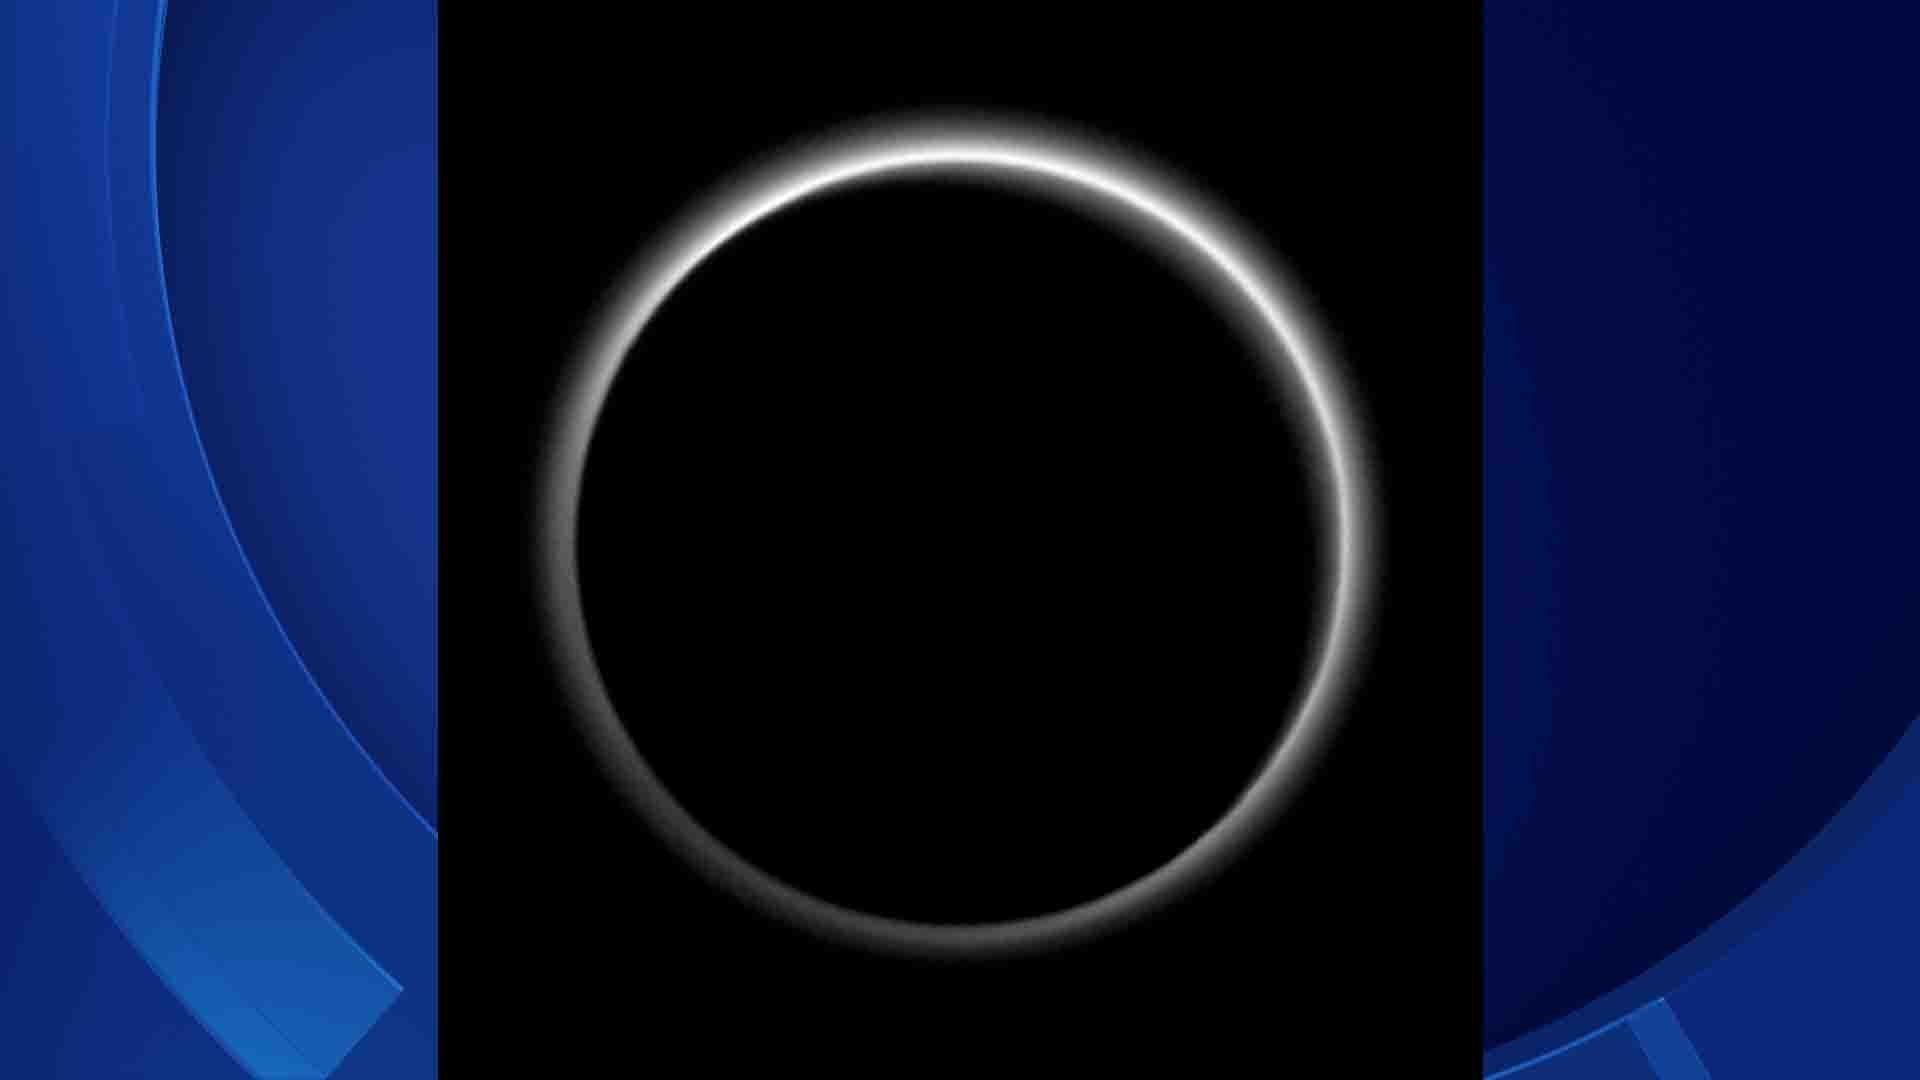 Backlit by the sun, Pluto's atmosphere rings its silhouette like a luminous halo in this image taken by NASA's New Horizons spacecraft around midnight EDT on July 15. (NASA photo)